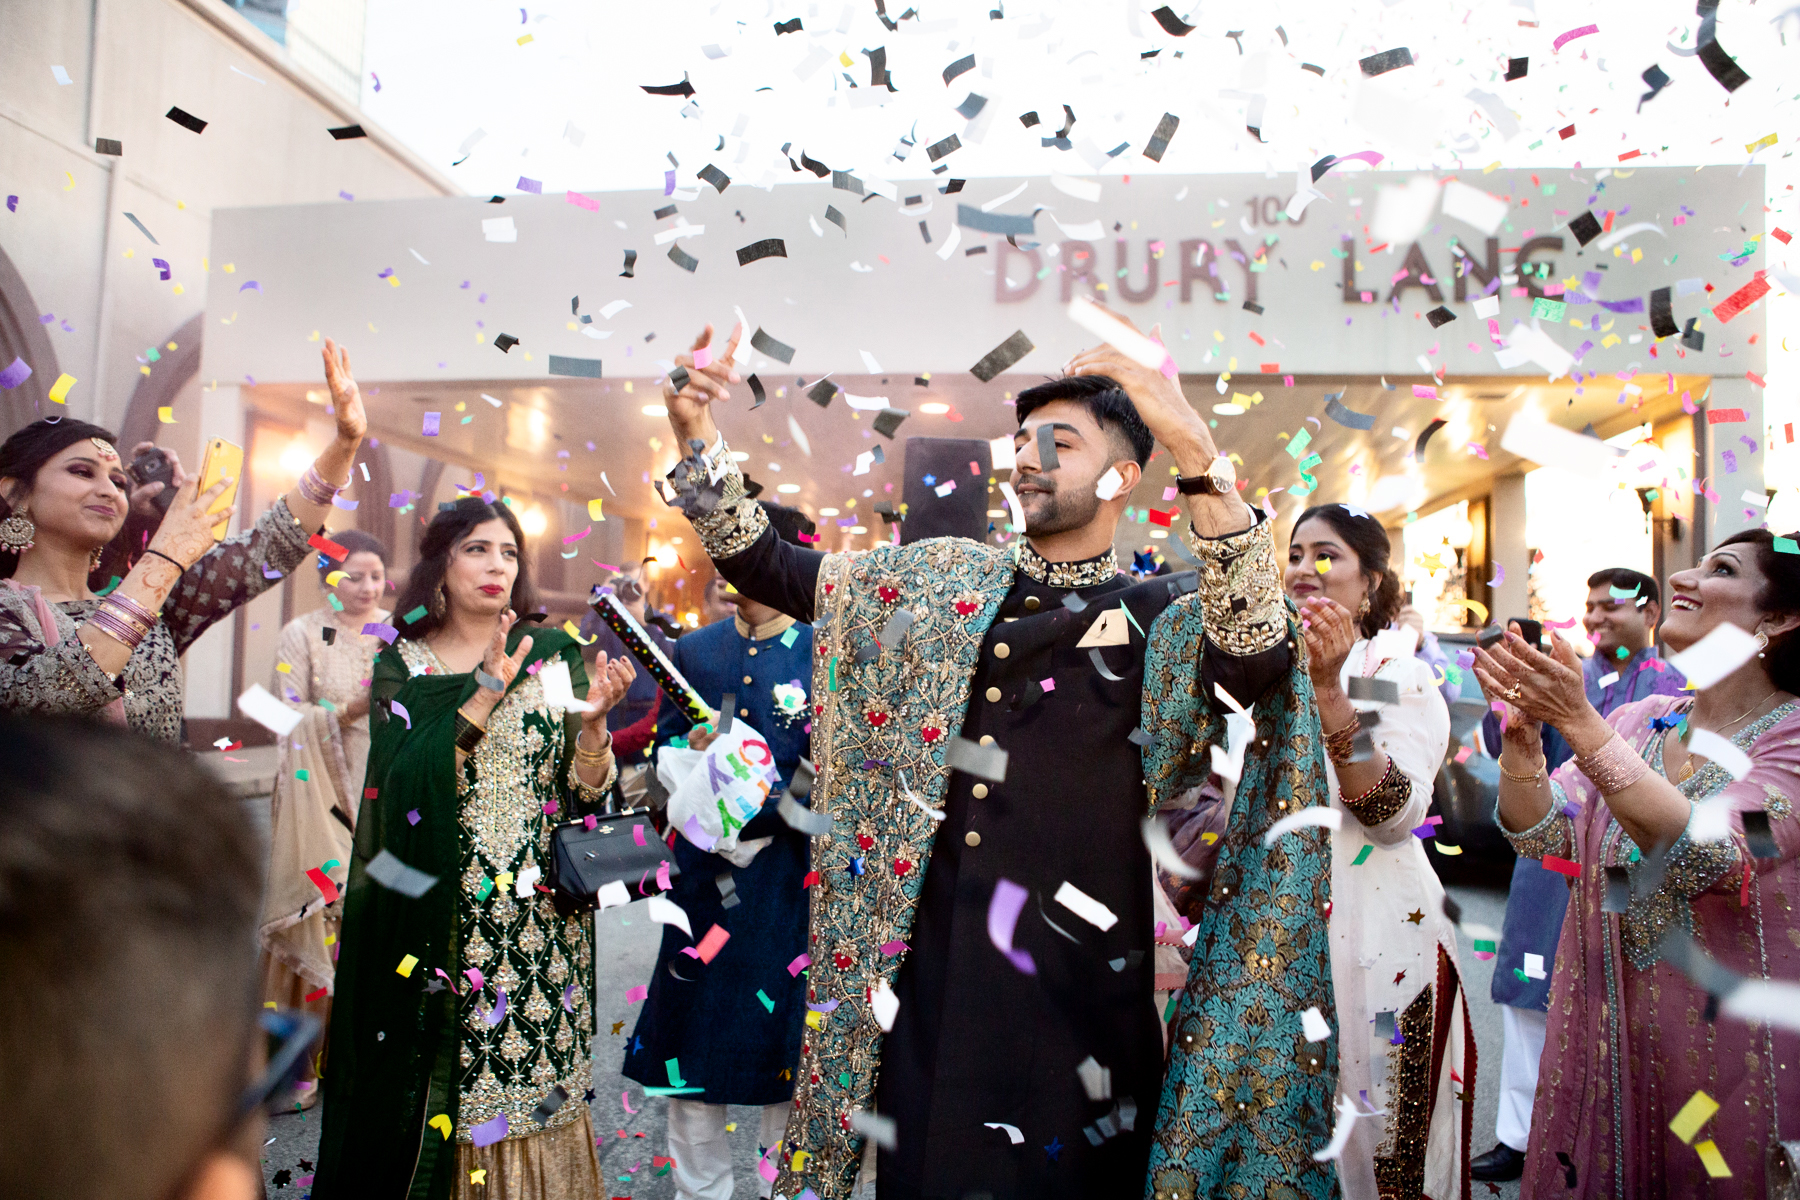 Drury Lane Pakistani Wedding